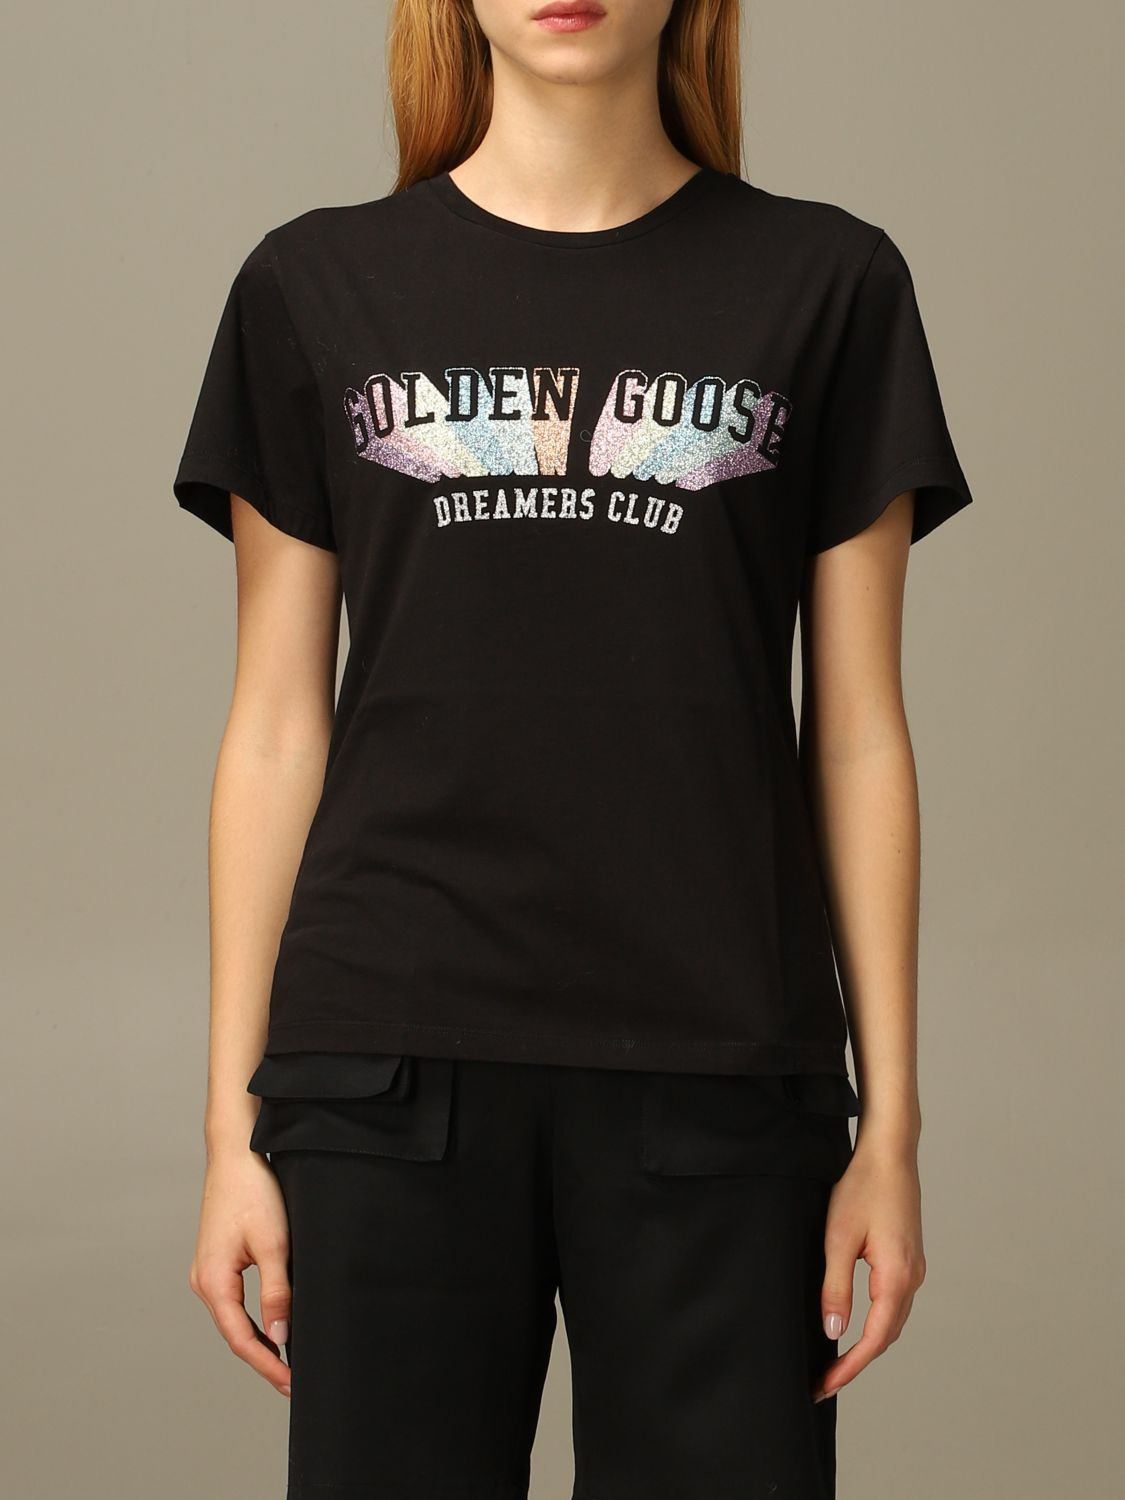 T-Shirt Golden Goose: T-shirt damen Golden Goose schwarz 1